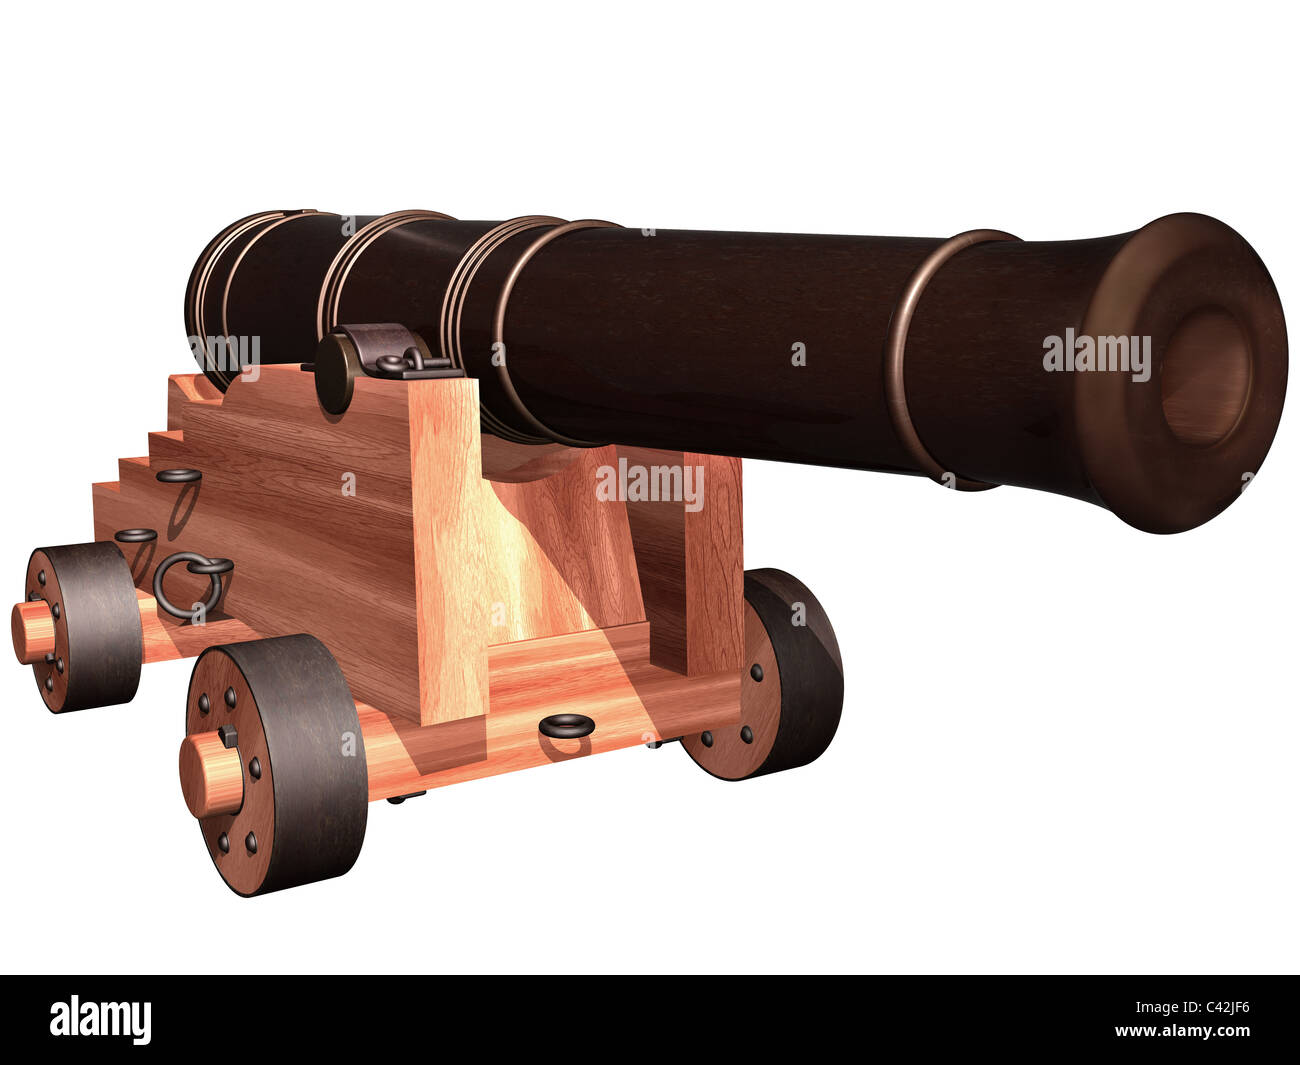 Isolated illustration of an antique ships cannon - Stock Image